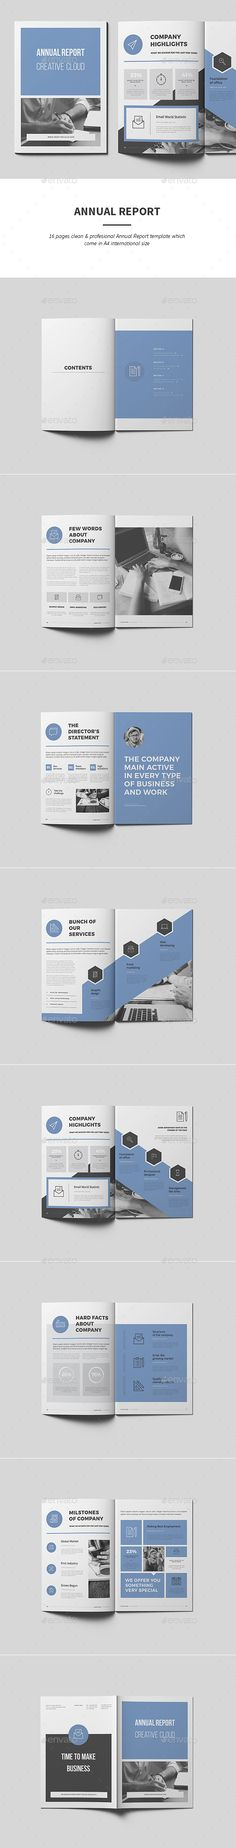 Annual Report — InDesign INDD #white #easy • Download ➝ https://graphicriver.net/item/annual-report/19413838?ref=pxcr